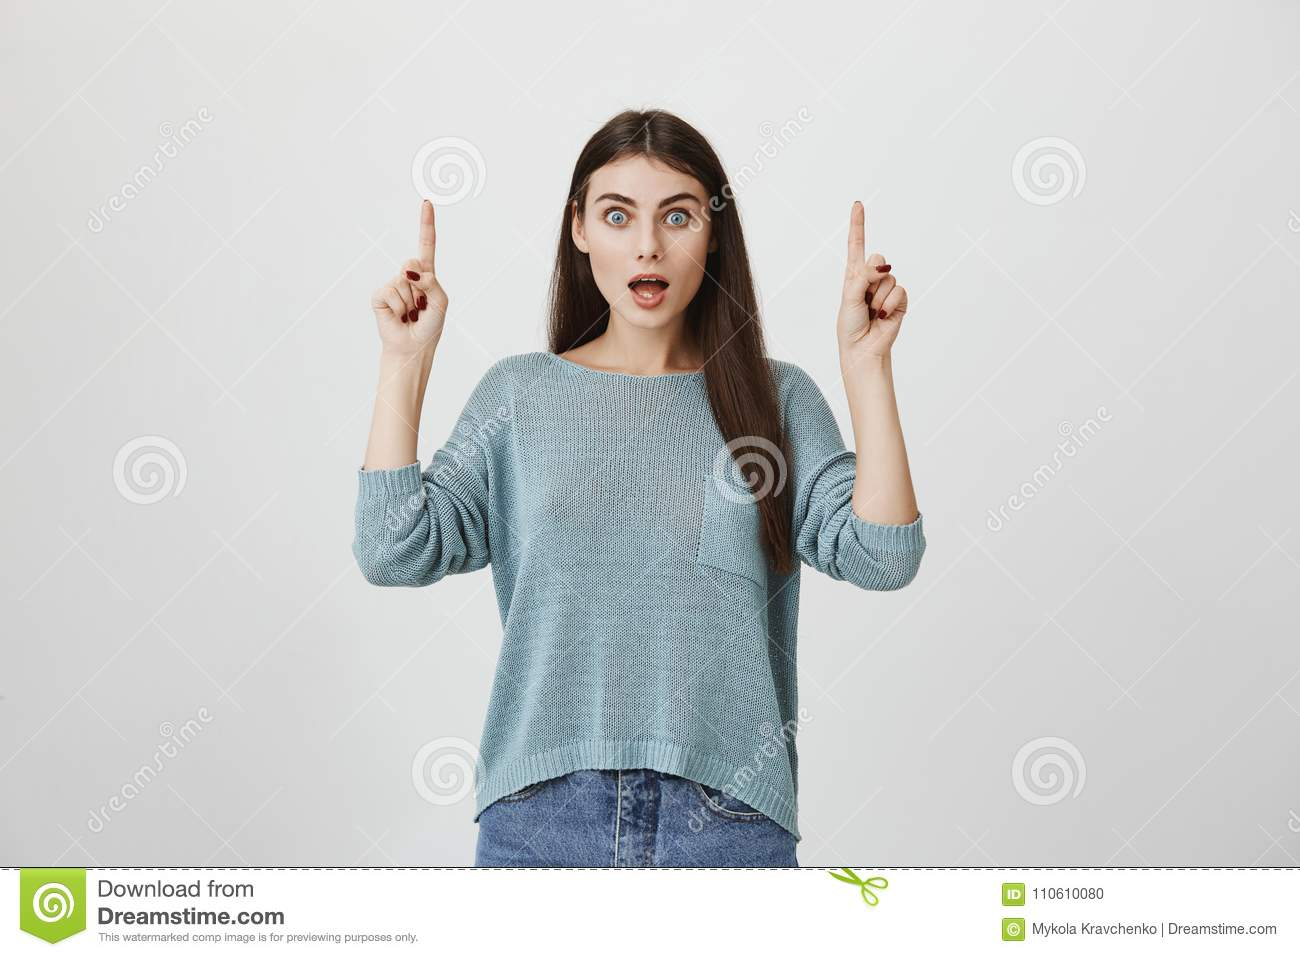 Shocked And Surprised Young Model Pointing Up With Index